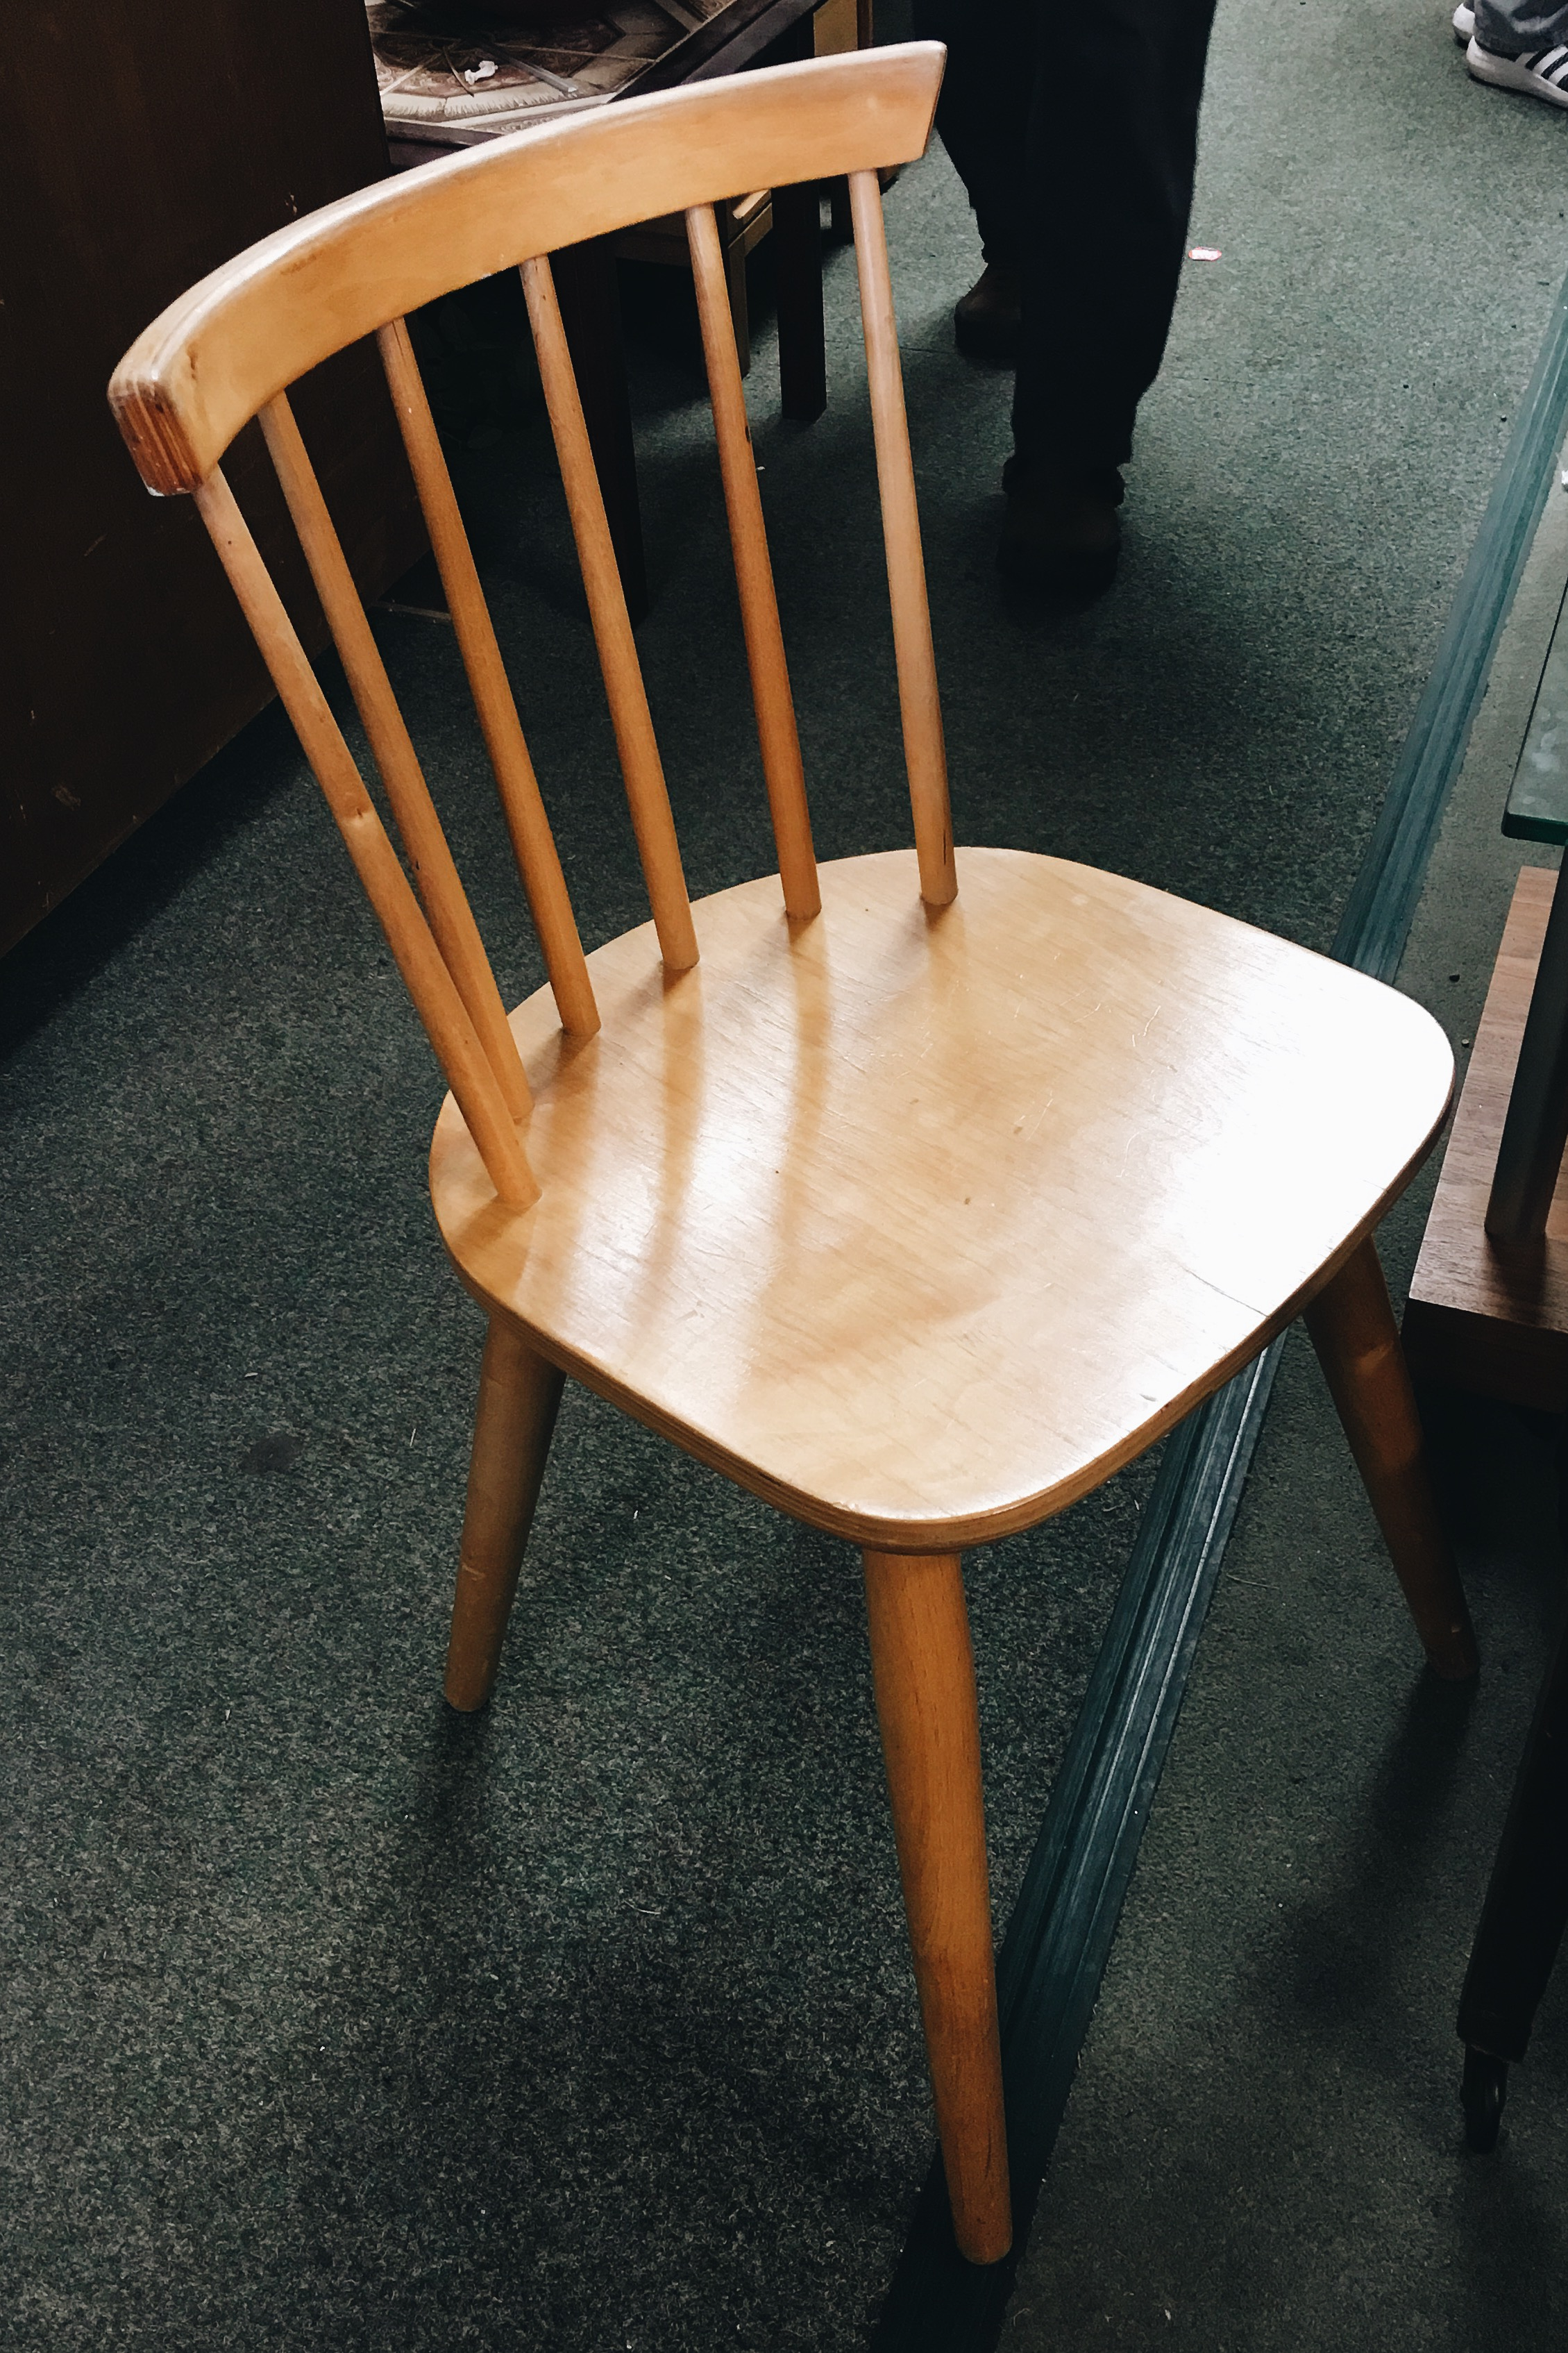 Four of these strong and sturdy ,Ercol-style wooden chairs were £10 eac  h at Ecco last weekend.